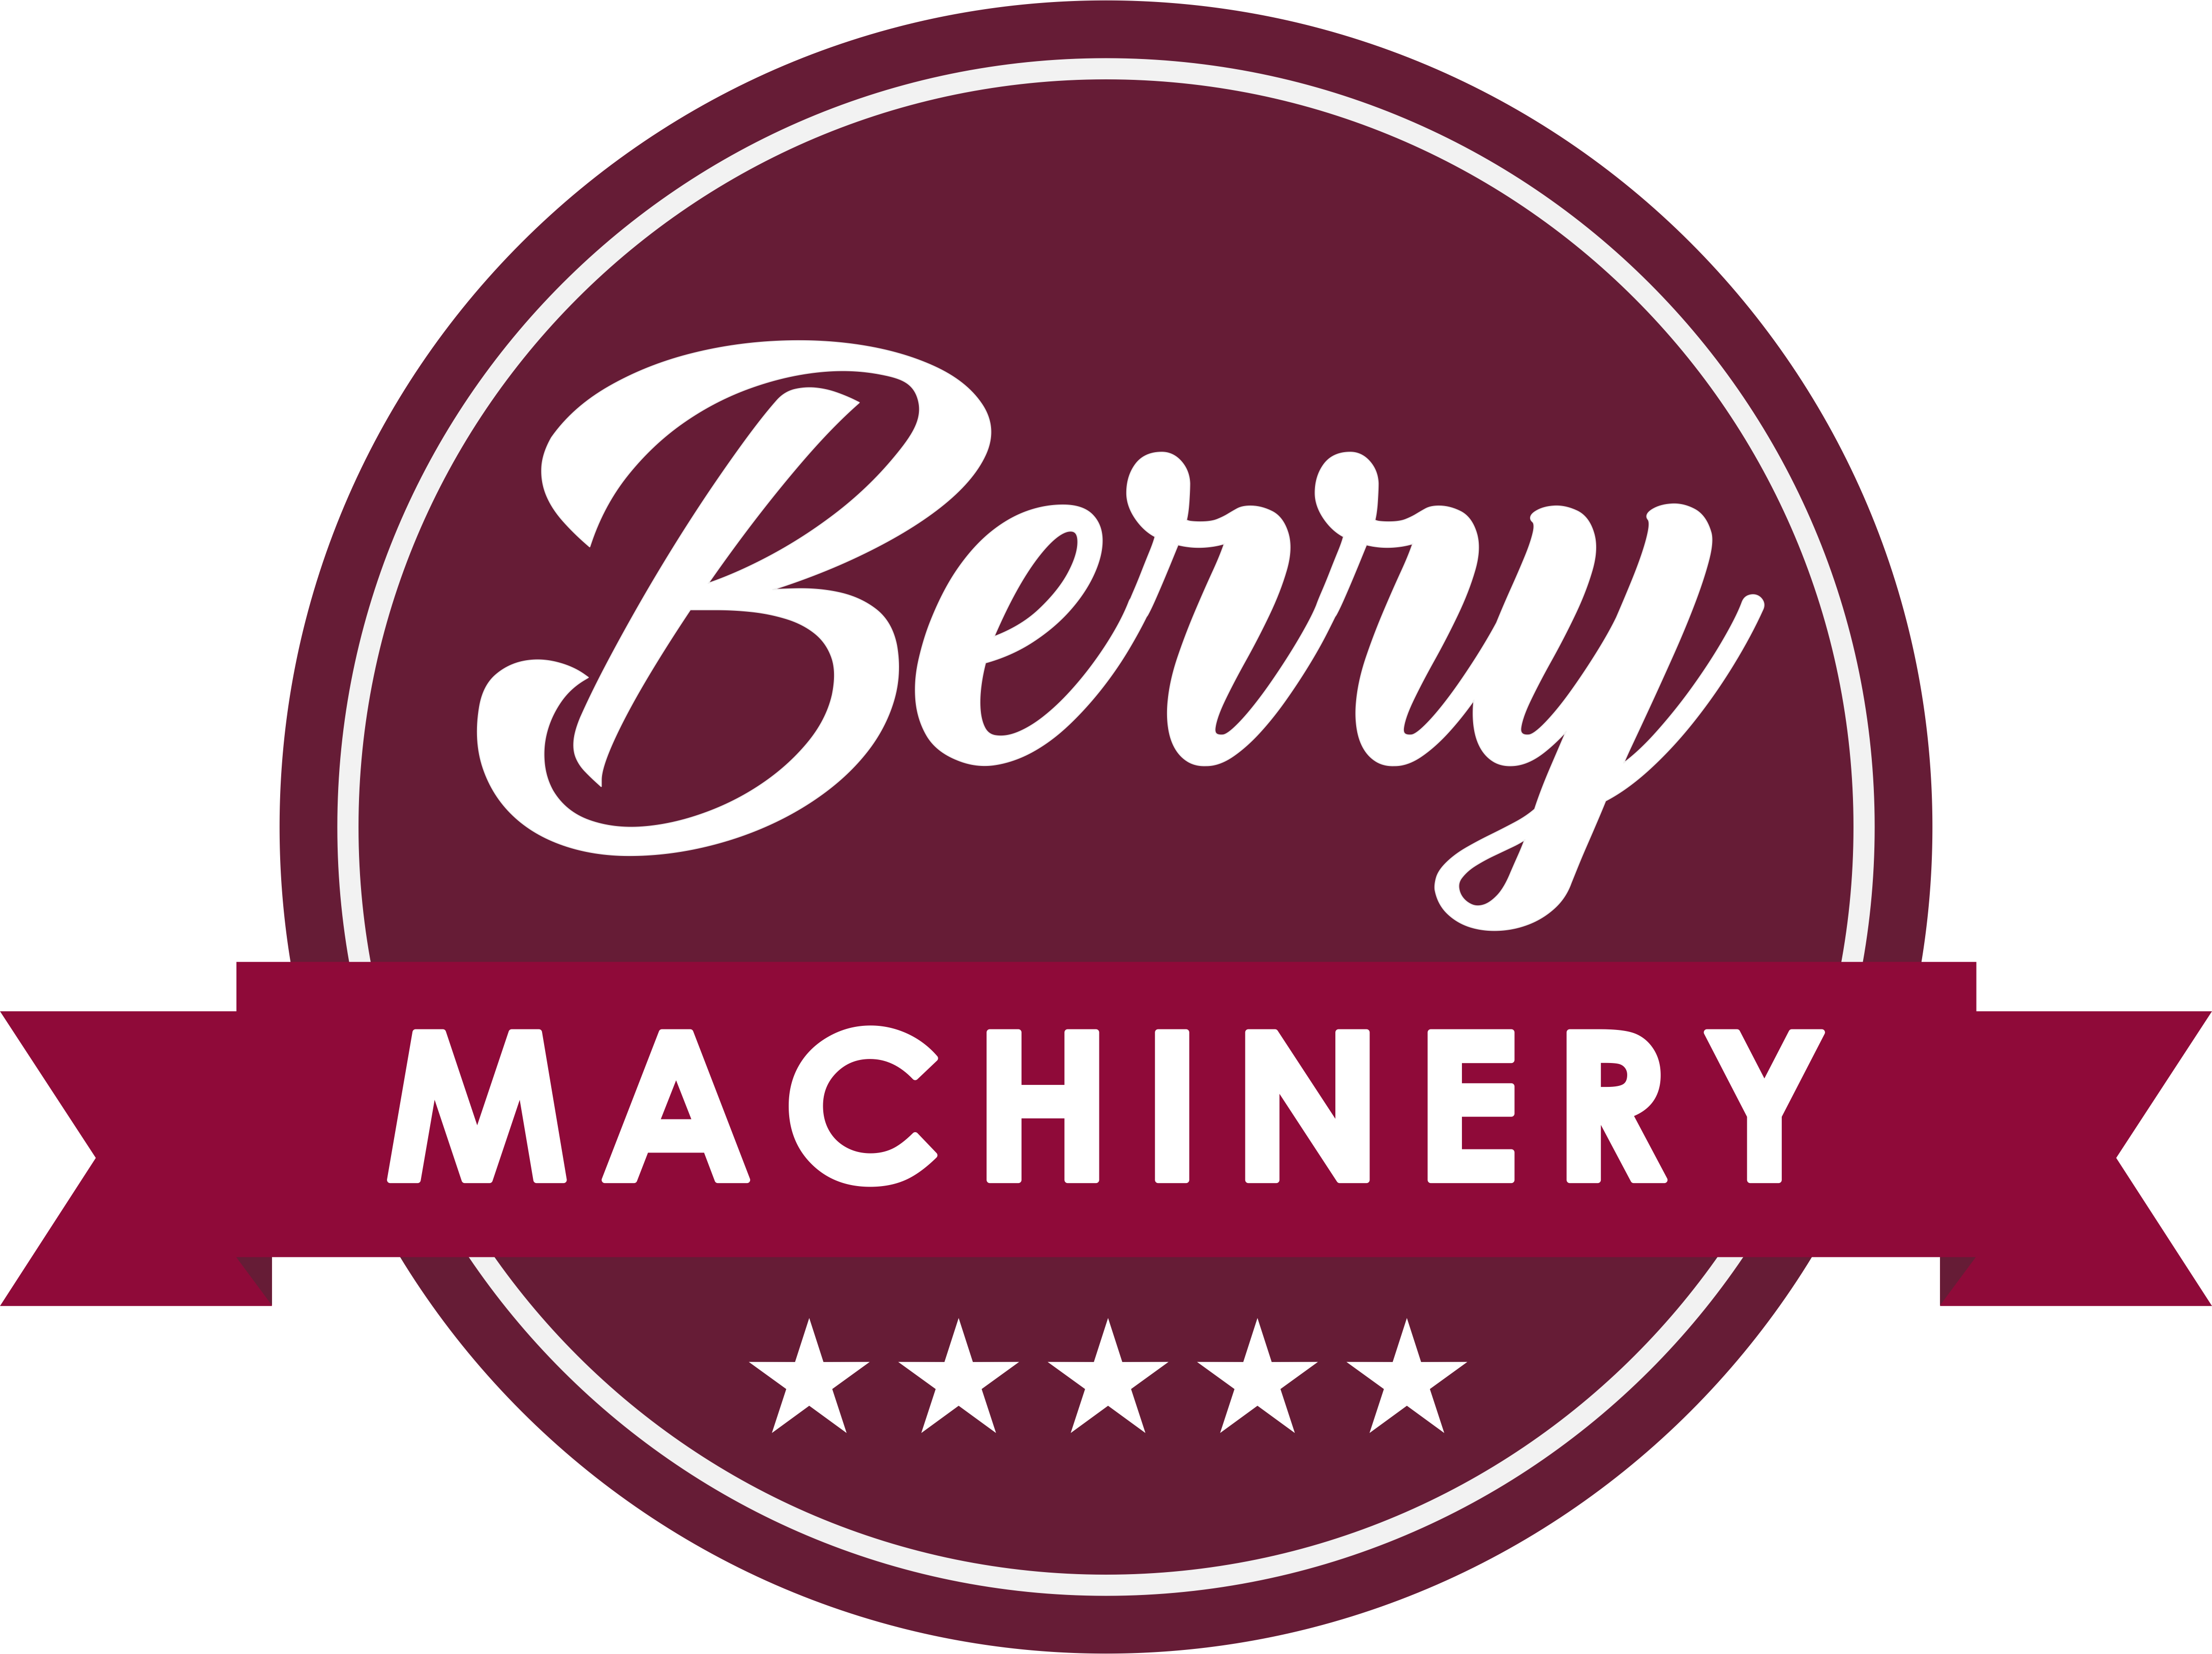 Berry Machinery Management Services